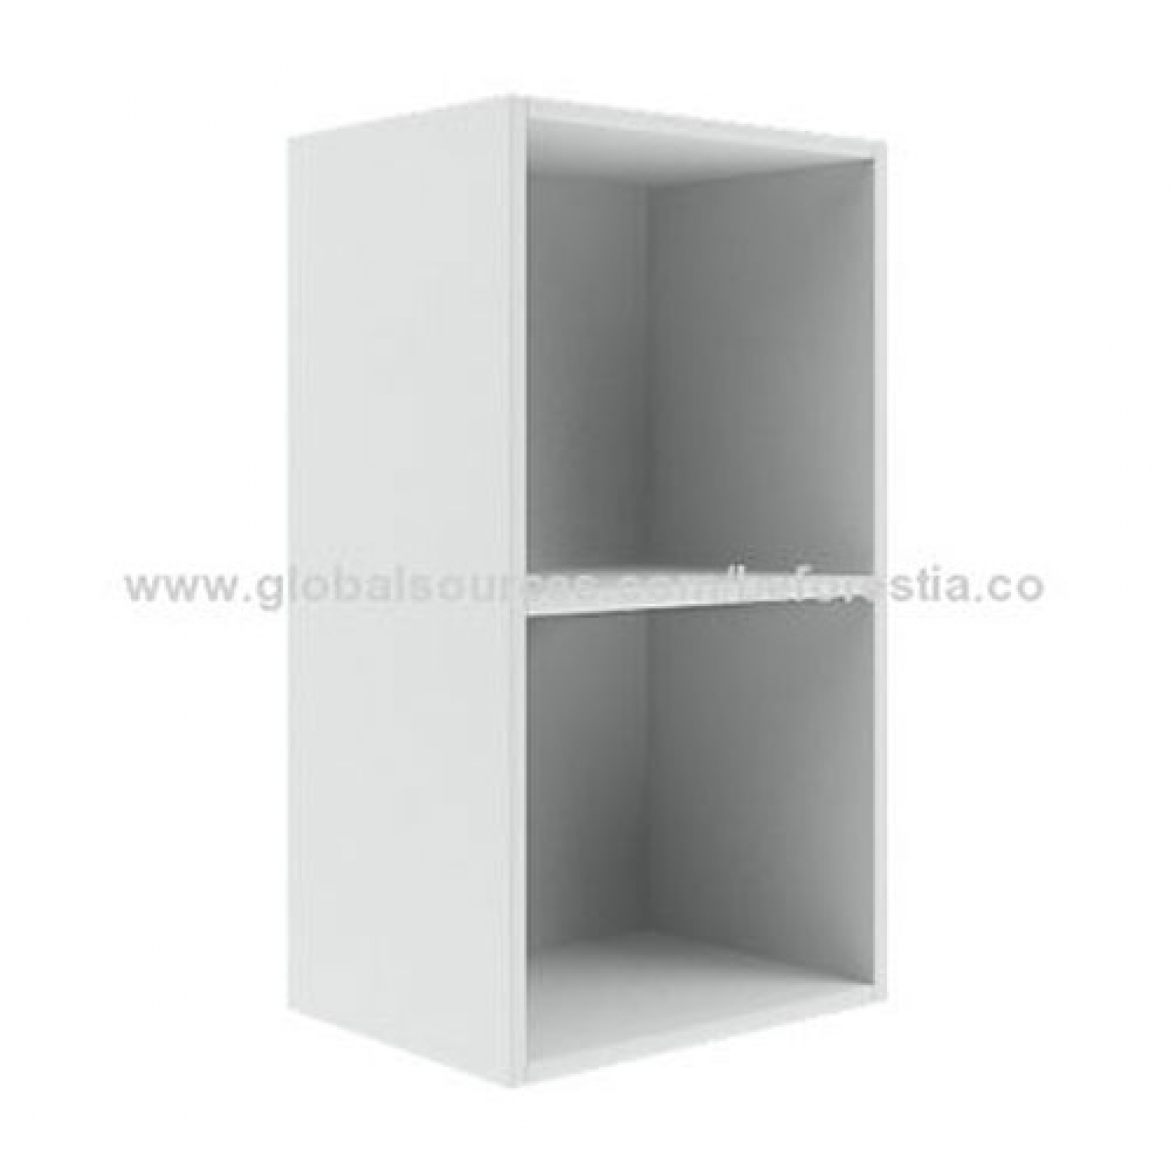 200 mm wall hung cabinet [1 door]